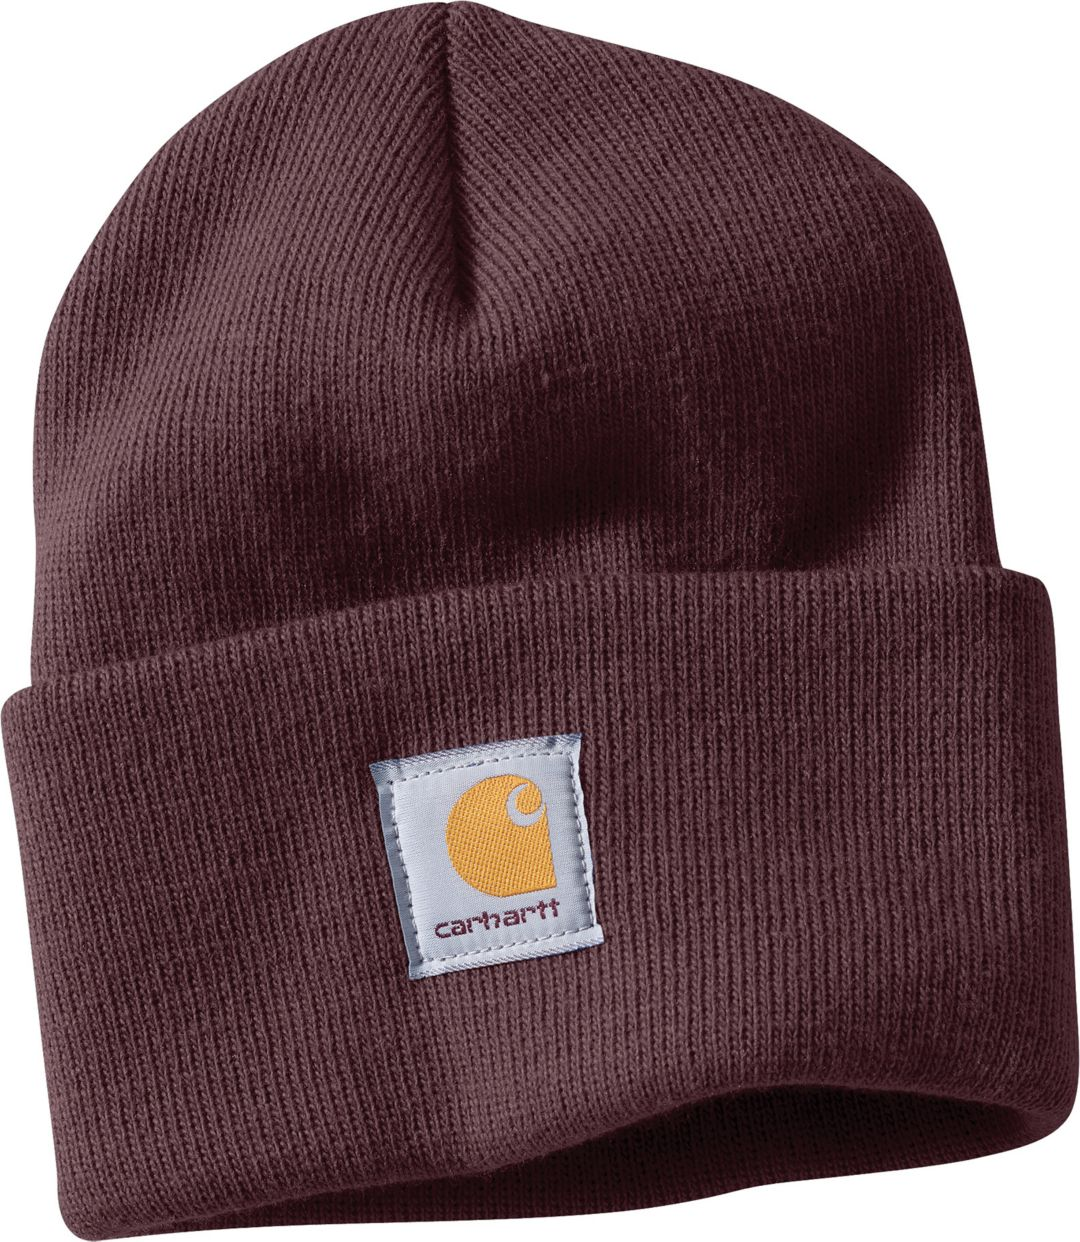 156d88ca9f5c04 Carhartt Women's Acrylic Watch Hat | DICK'S Sporting Goods